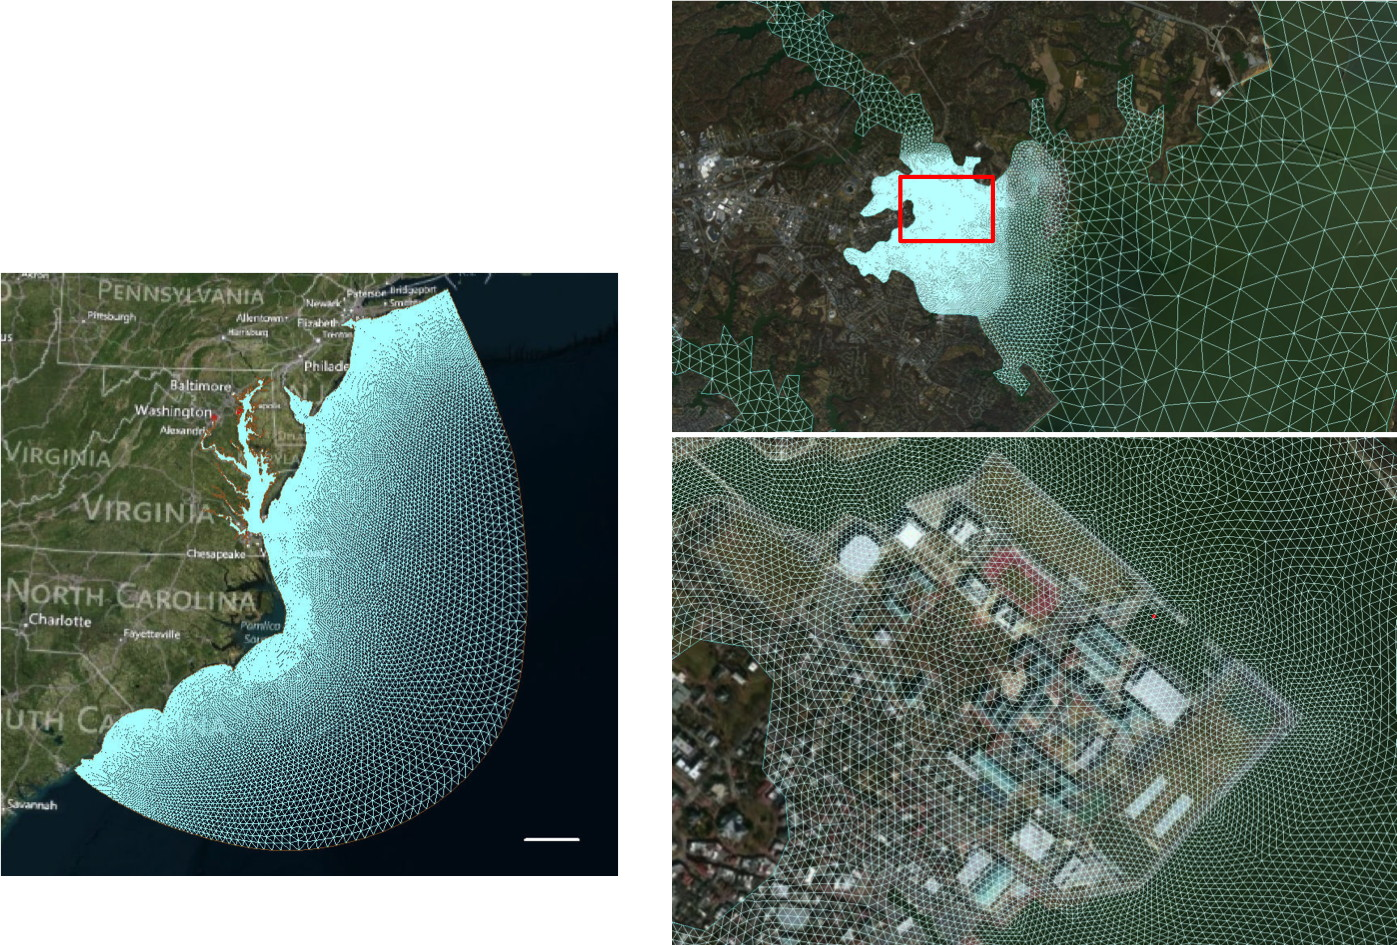 High resolution nested 3D coastal storm surge model to explore storm surge scenarios, in collaboration with PNNL's Marine Sciences Laboratory in Sequim, WA.